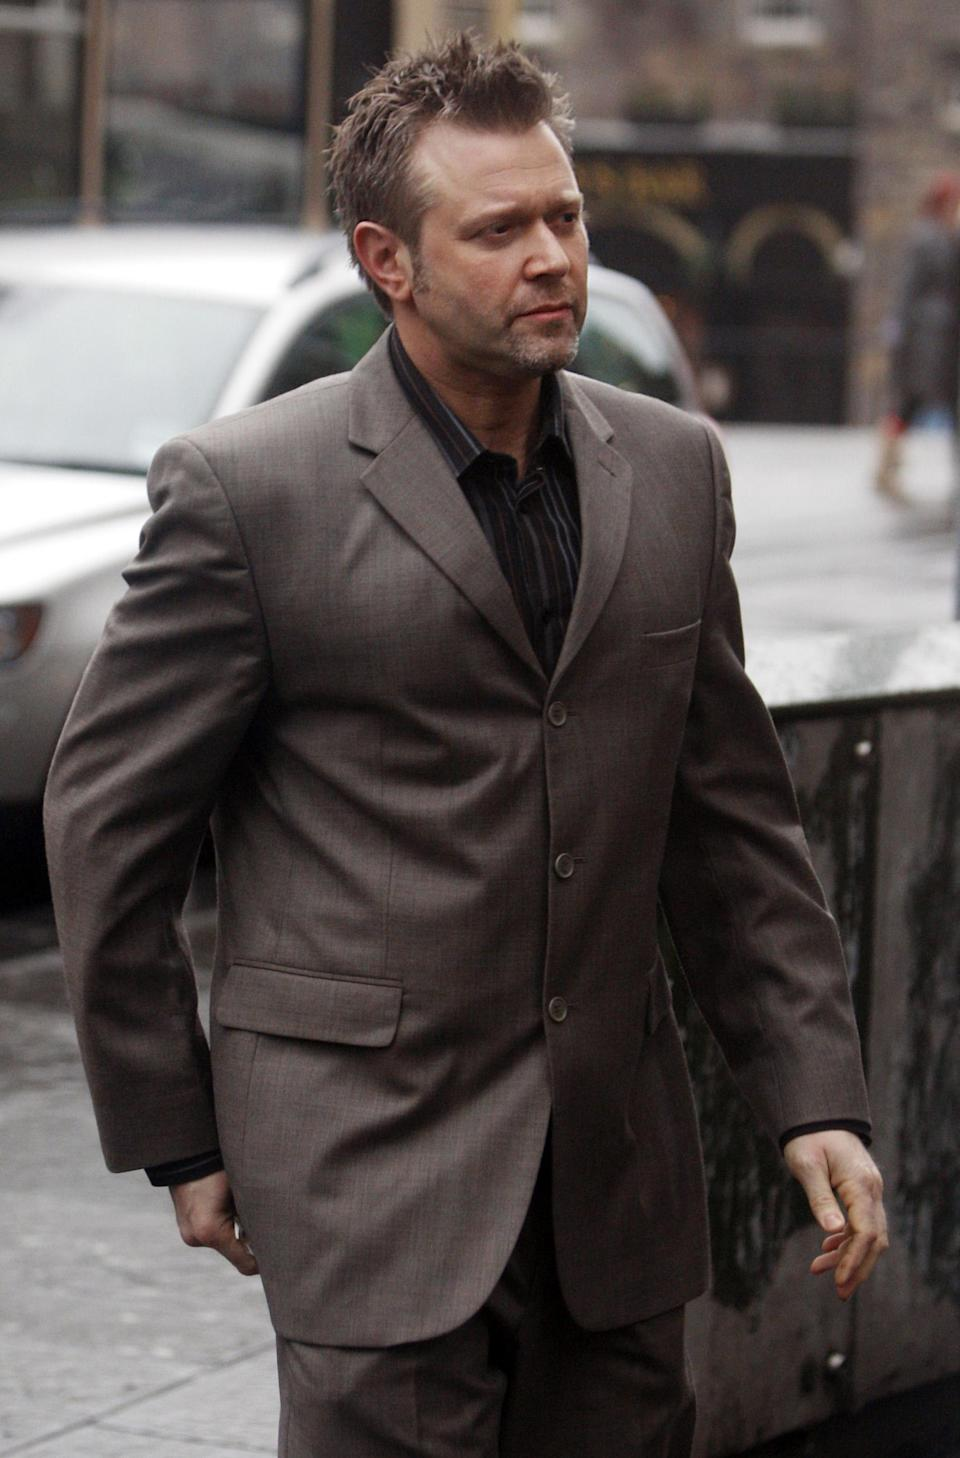 Darren Day arrives at Edinburgh Sheriff Court for a preliminary hearing after he was charged with drink-driving.